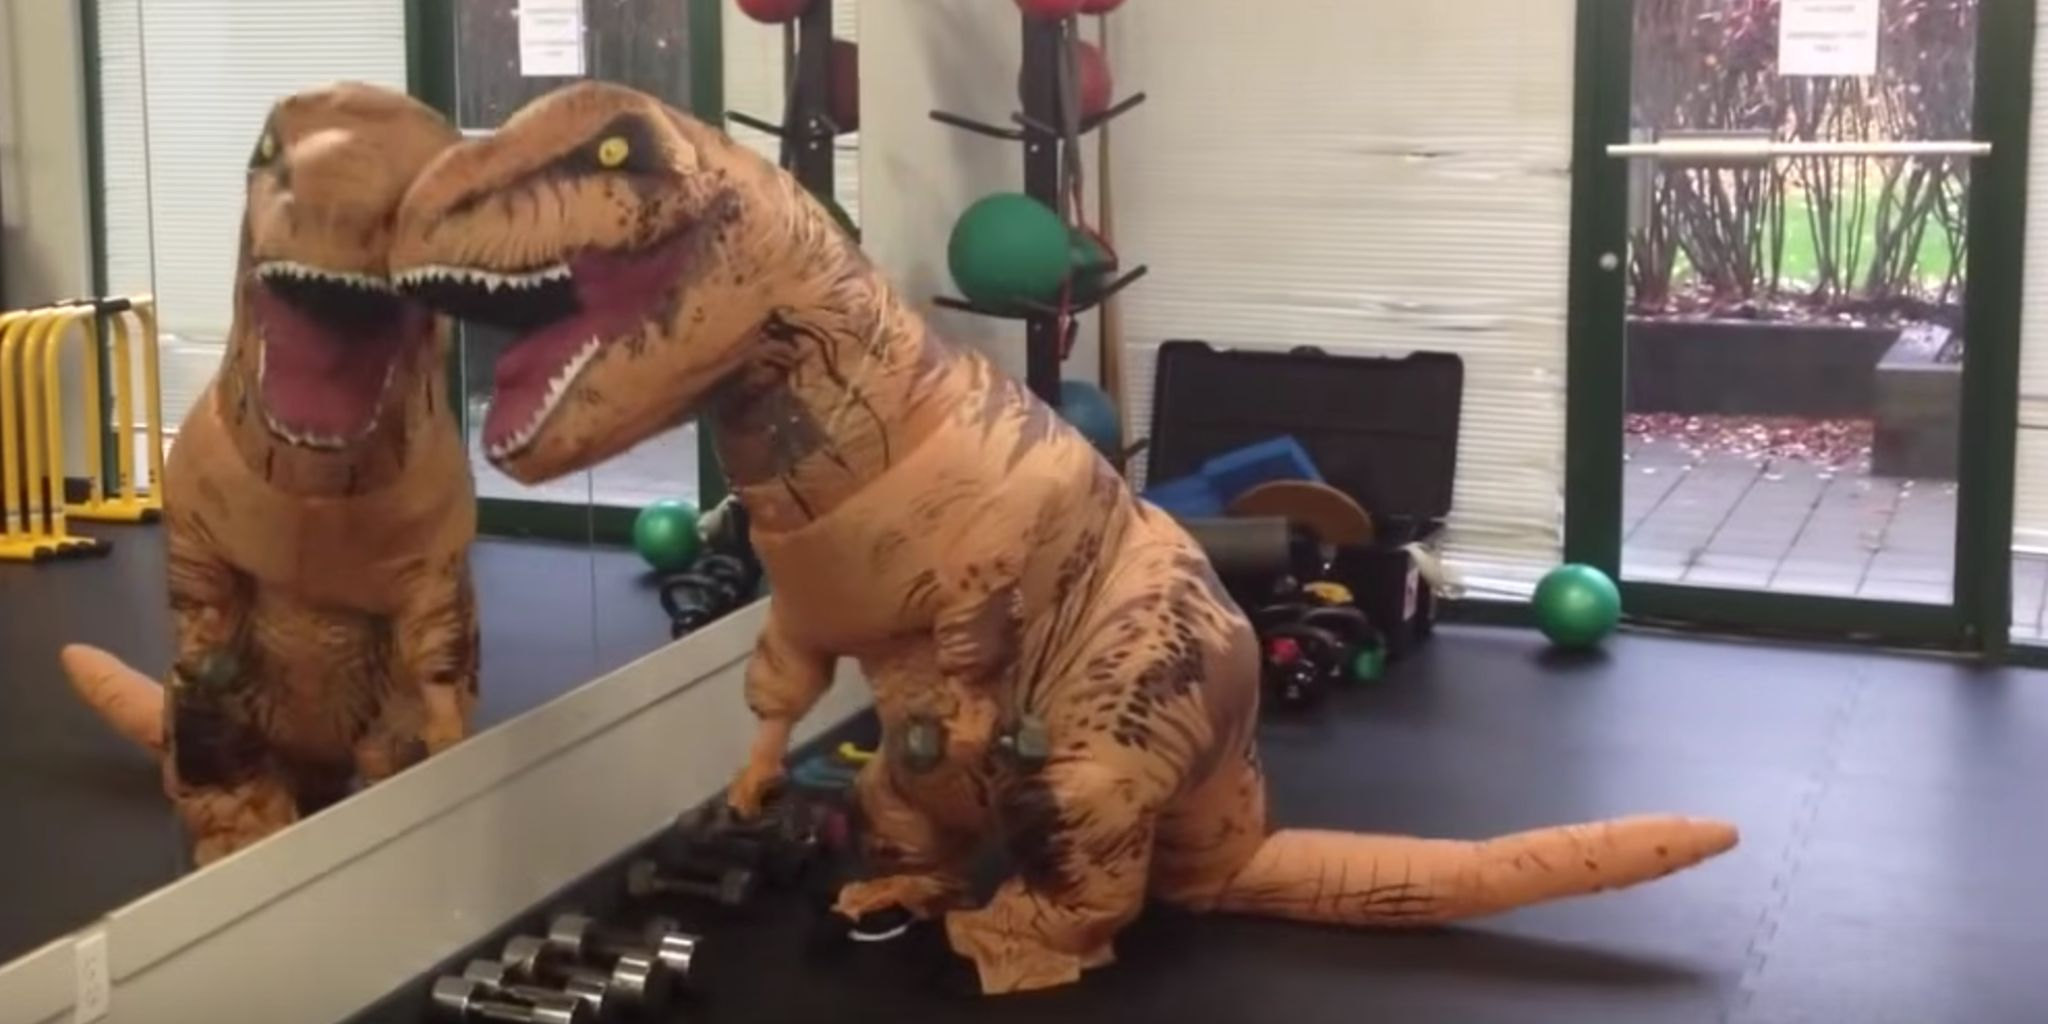 The Funniest T-Rex Videos That'll Crack You Up